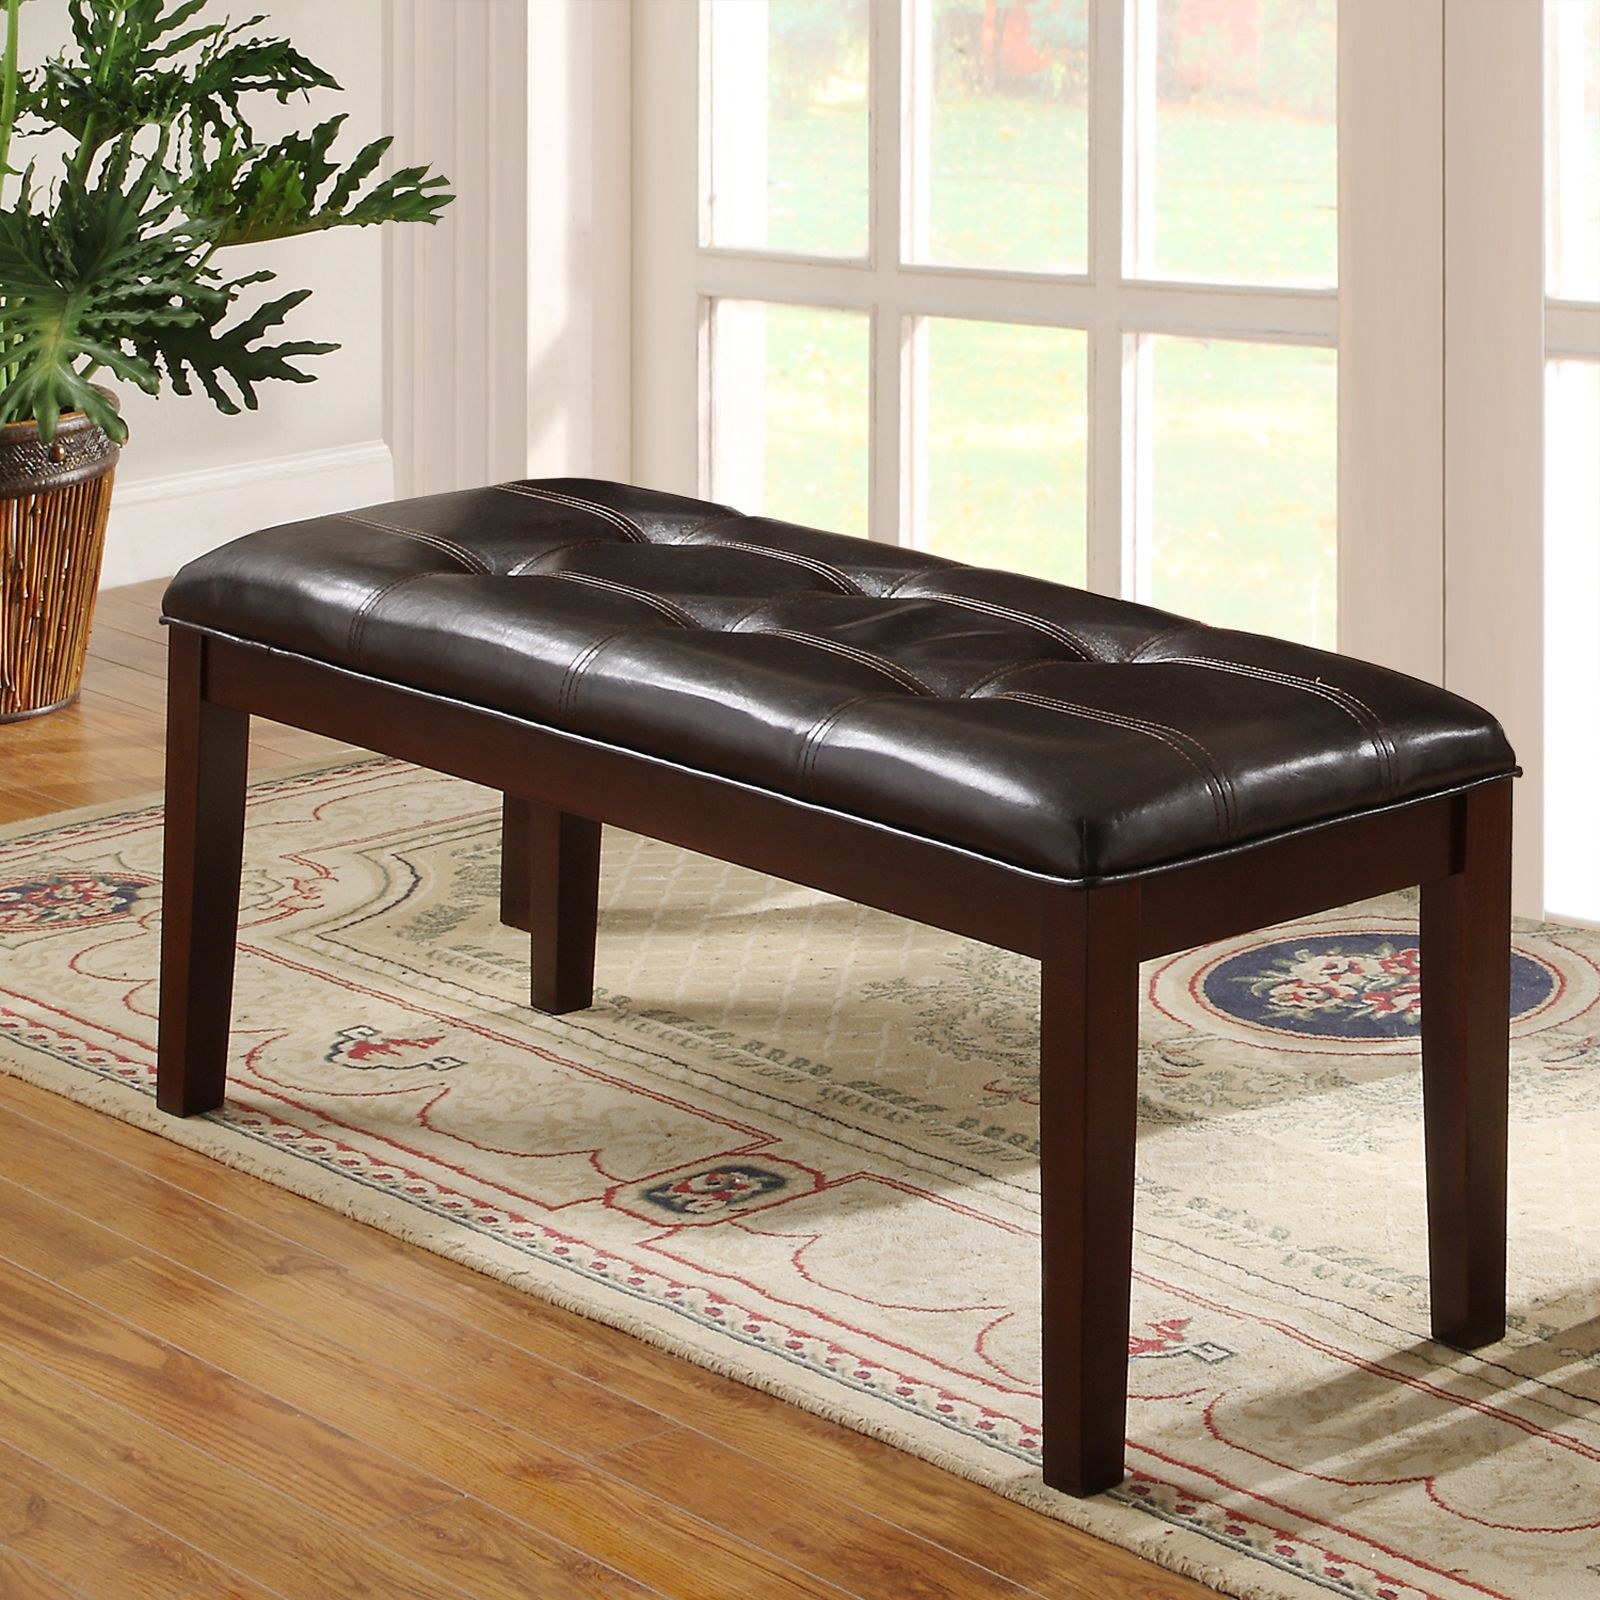 Dining room table with upholstered bench  Oxford Creek Monte Rich Espresso in Casual Upholstered Bench